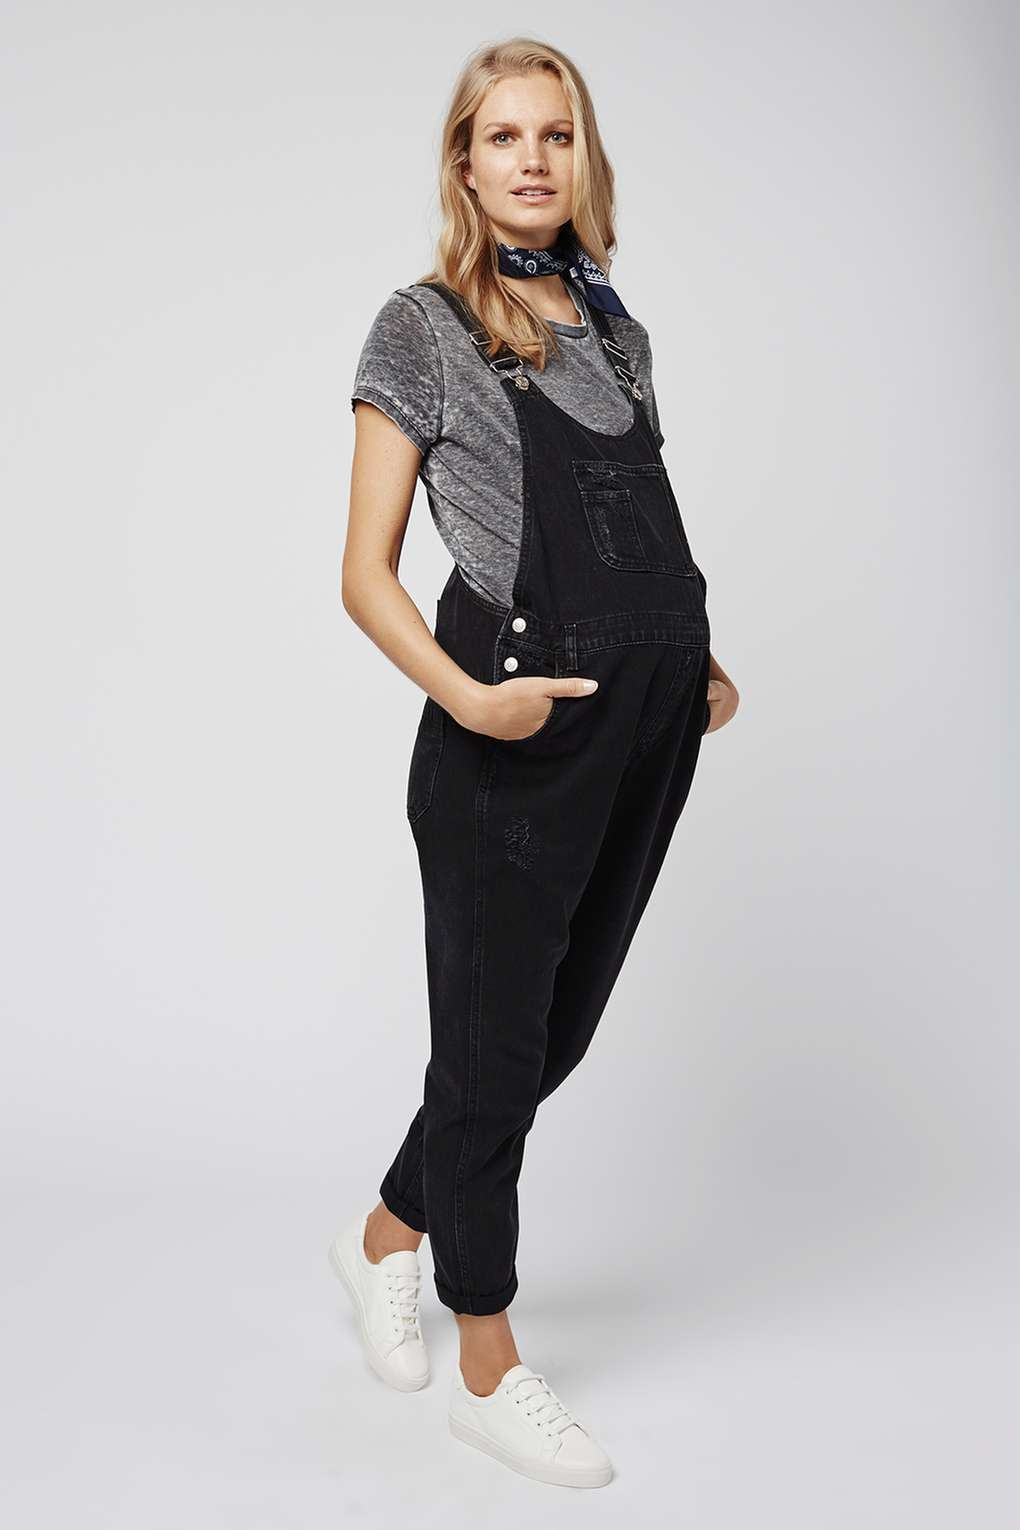 Maternity Dungarees for Perfect Comfort